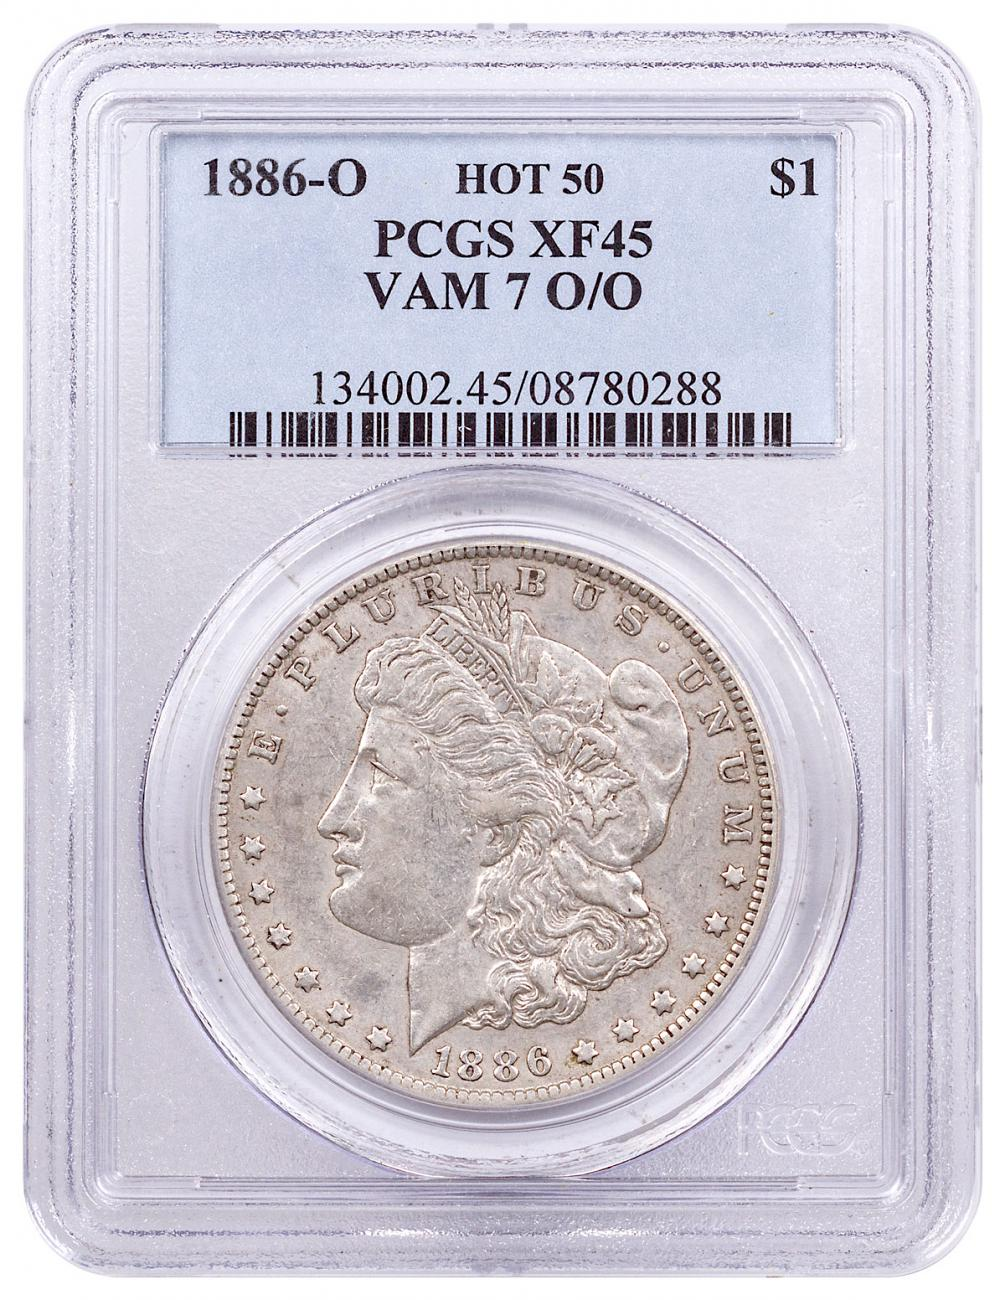 1886-O Morgan Silver Dollar Hot 50 PCGS XF45 VAM-7 O/O